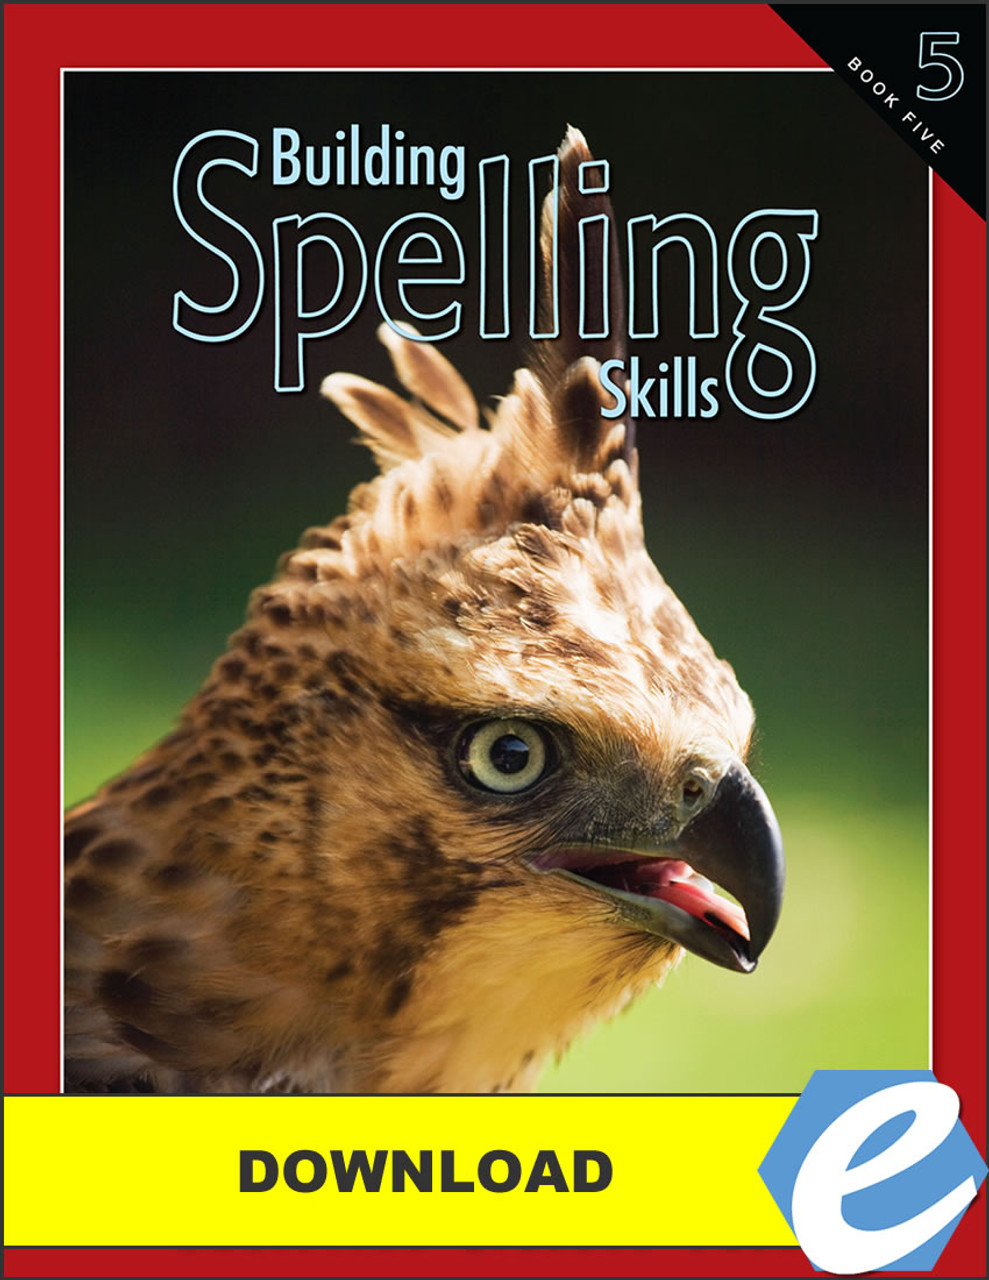 Building Spelling Skills: Book 5, 2nd edition - PDF Download